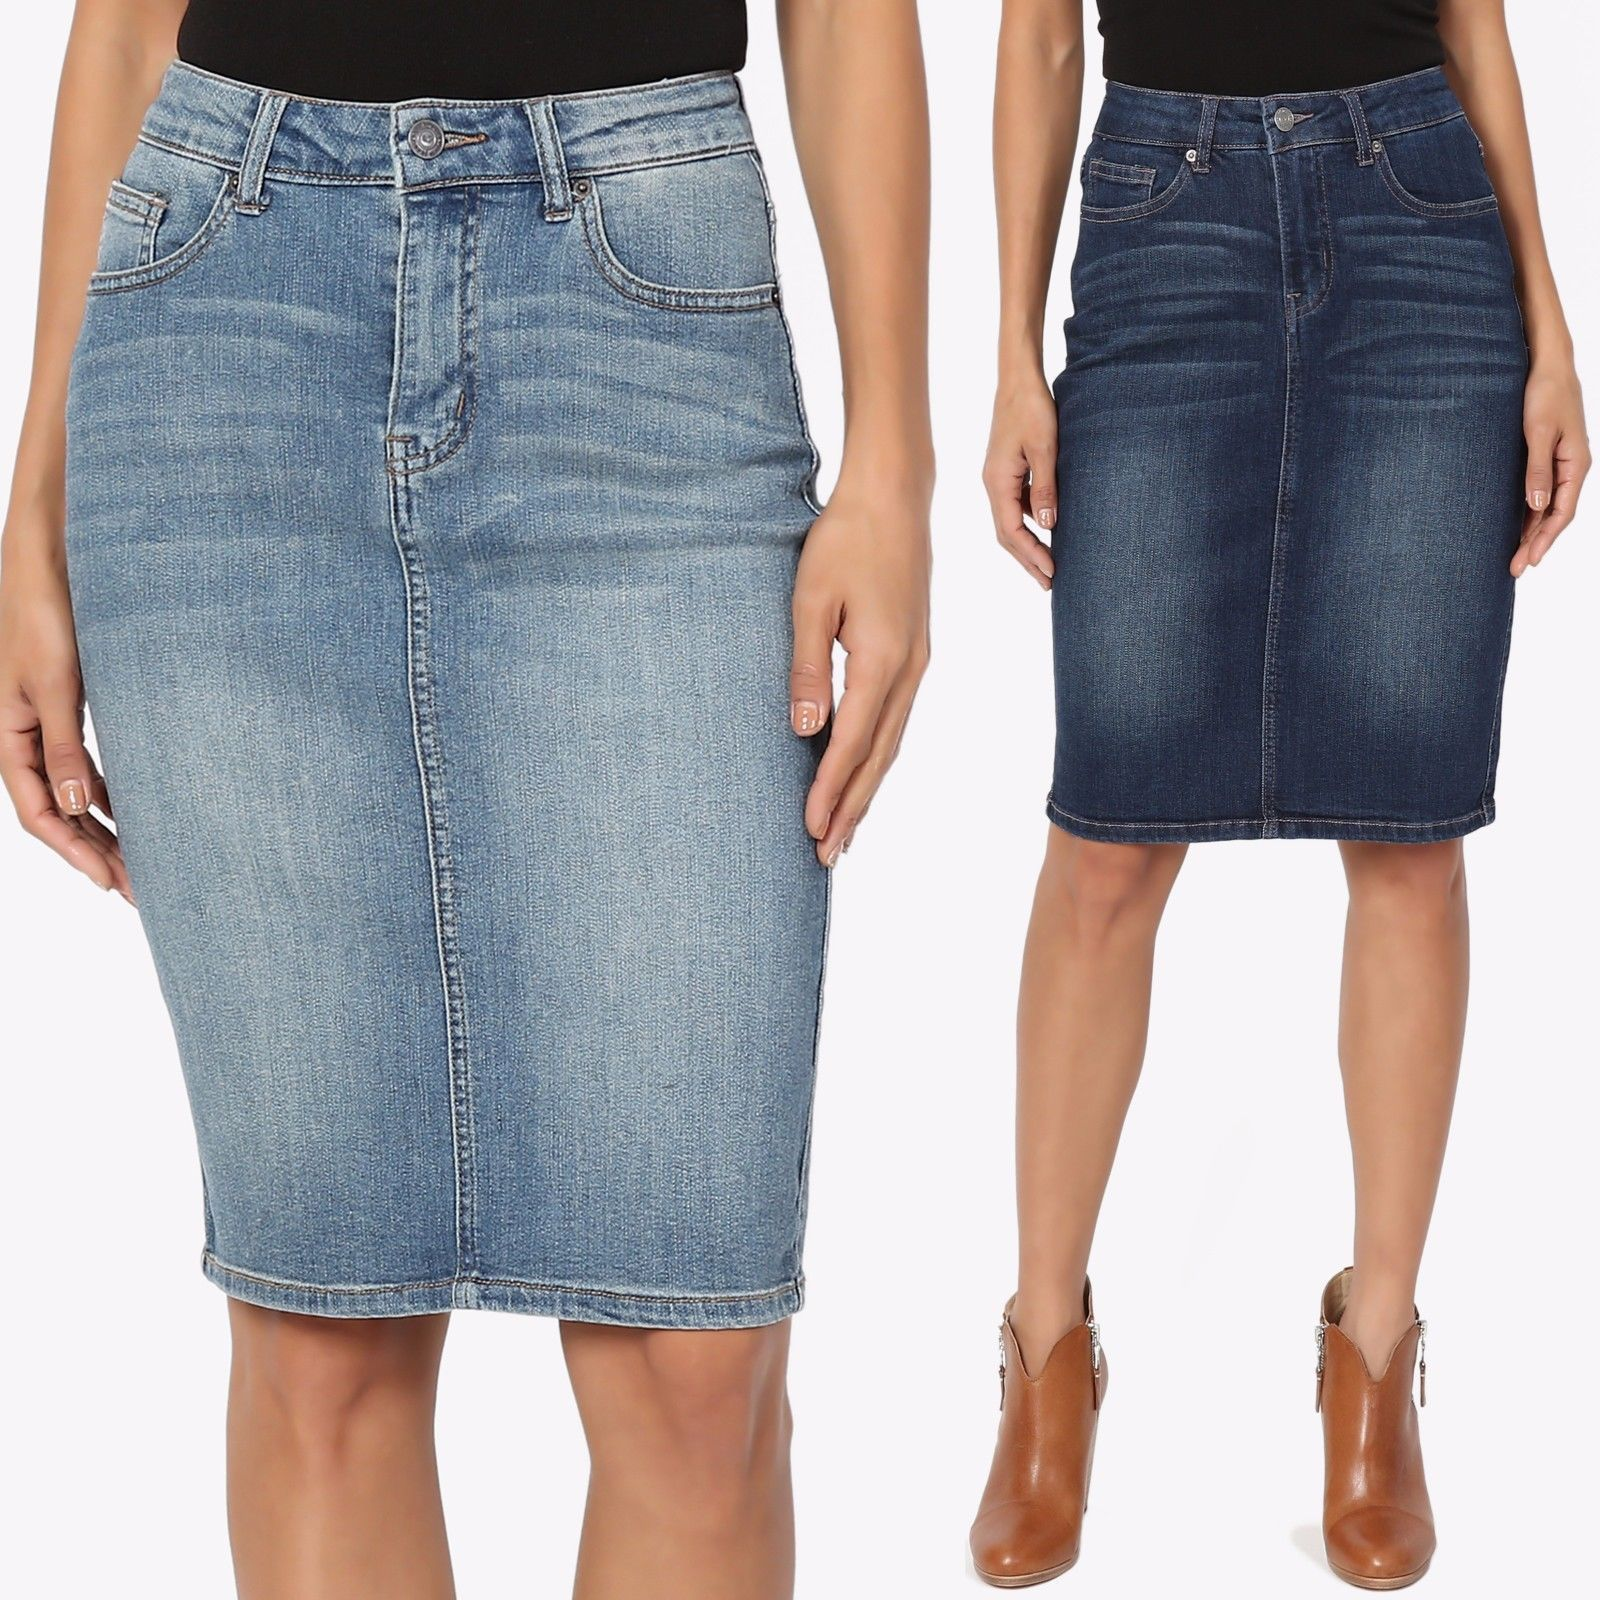 #SG-75933 NWT Stretch Denim Indigo Wash Mid Length Pencil Skirt,size S to 3XL